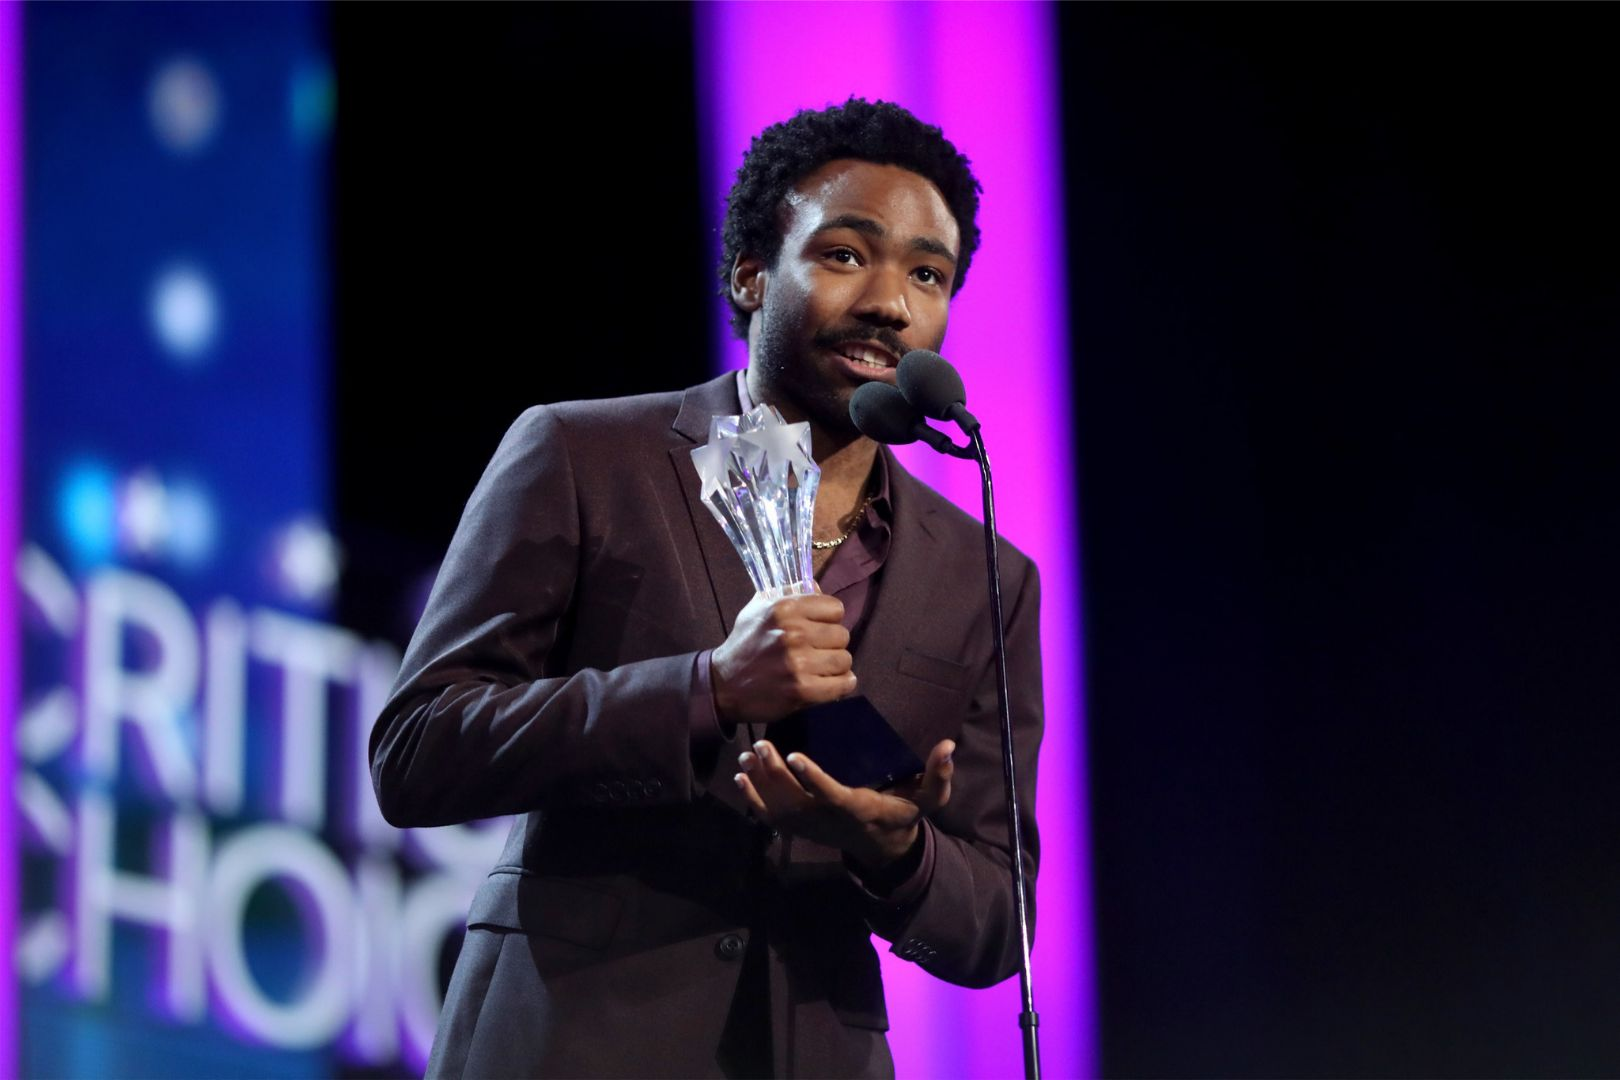 Donald Glover shouts out Migos